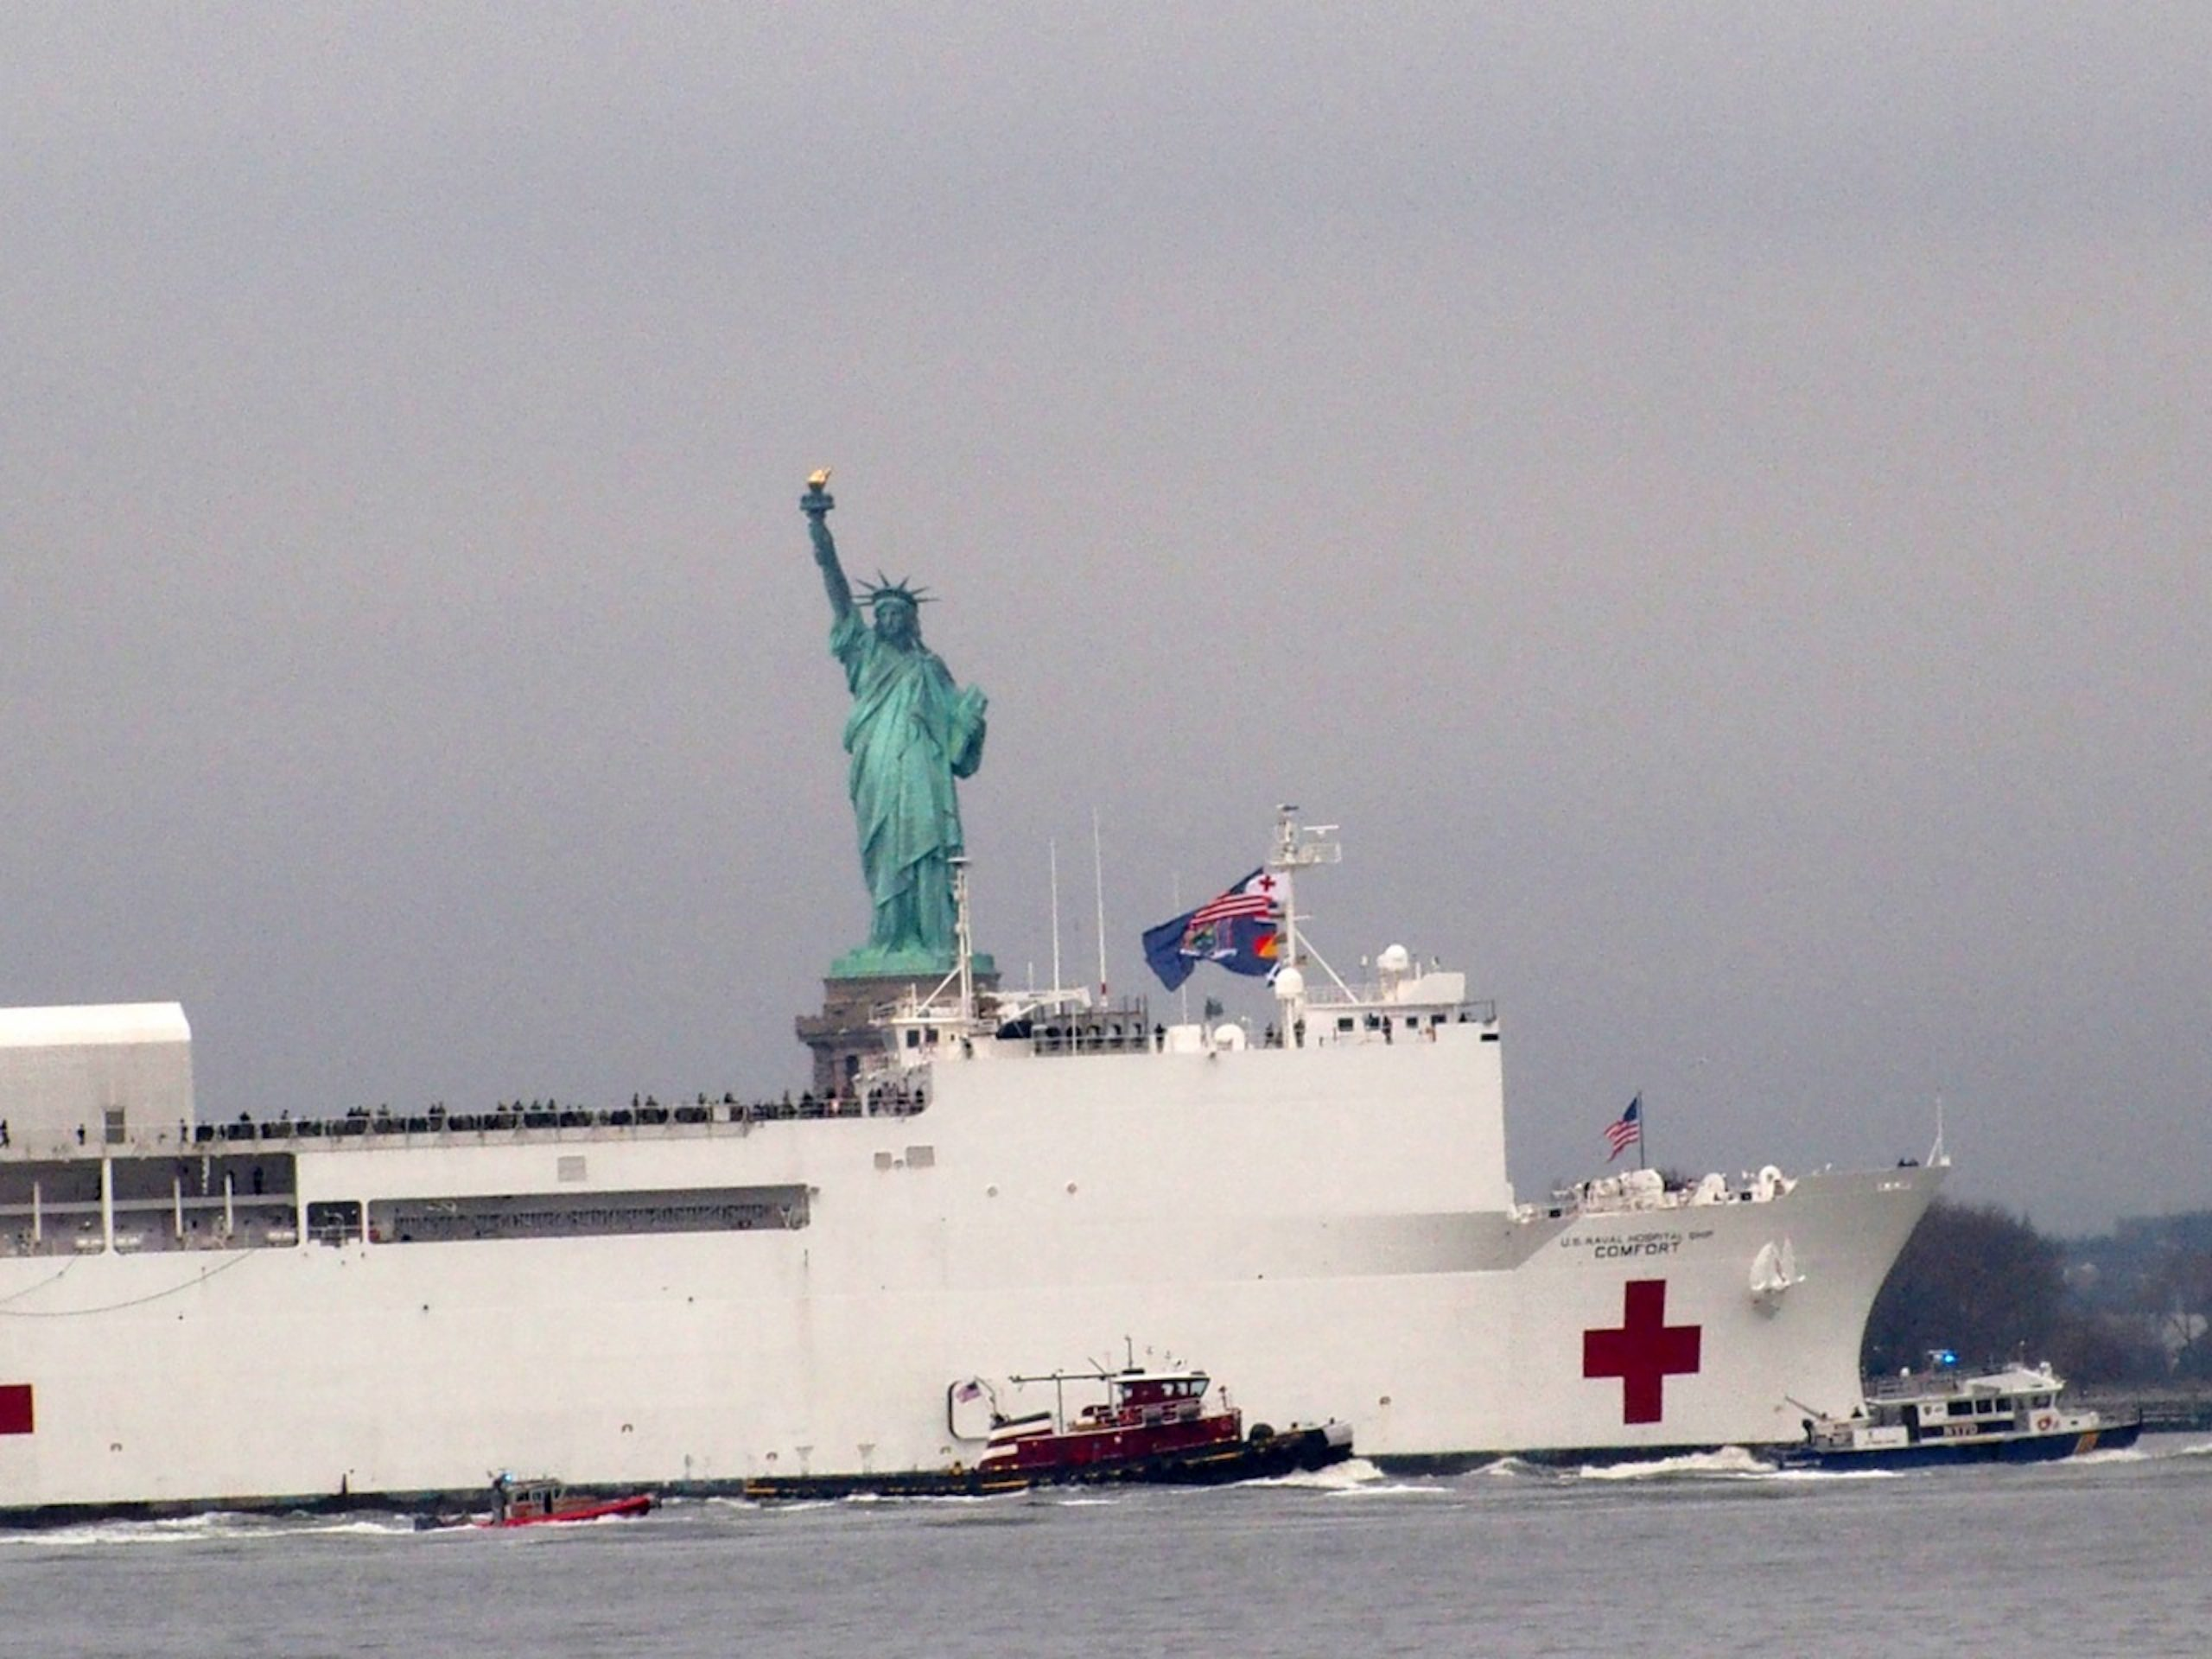 The USNS Comfort has arrived to NYC